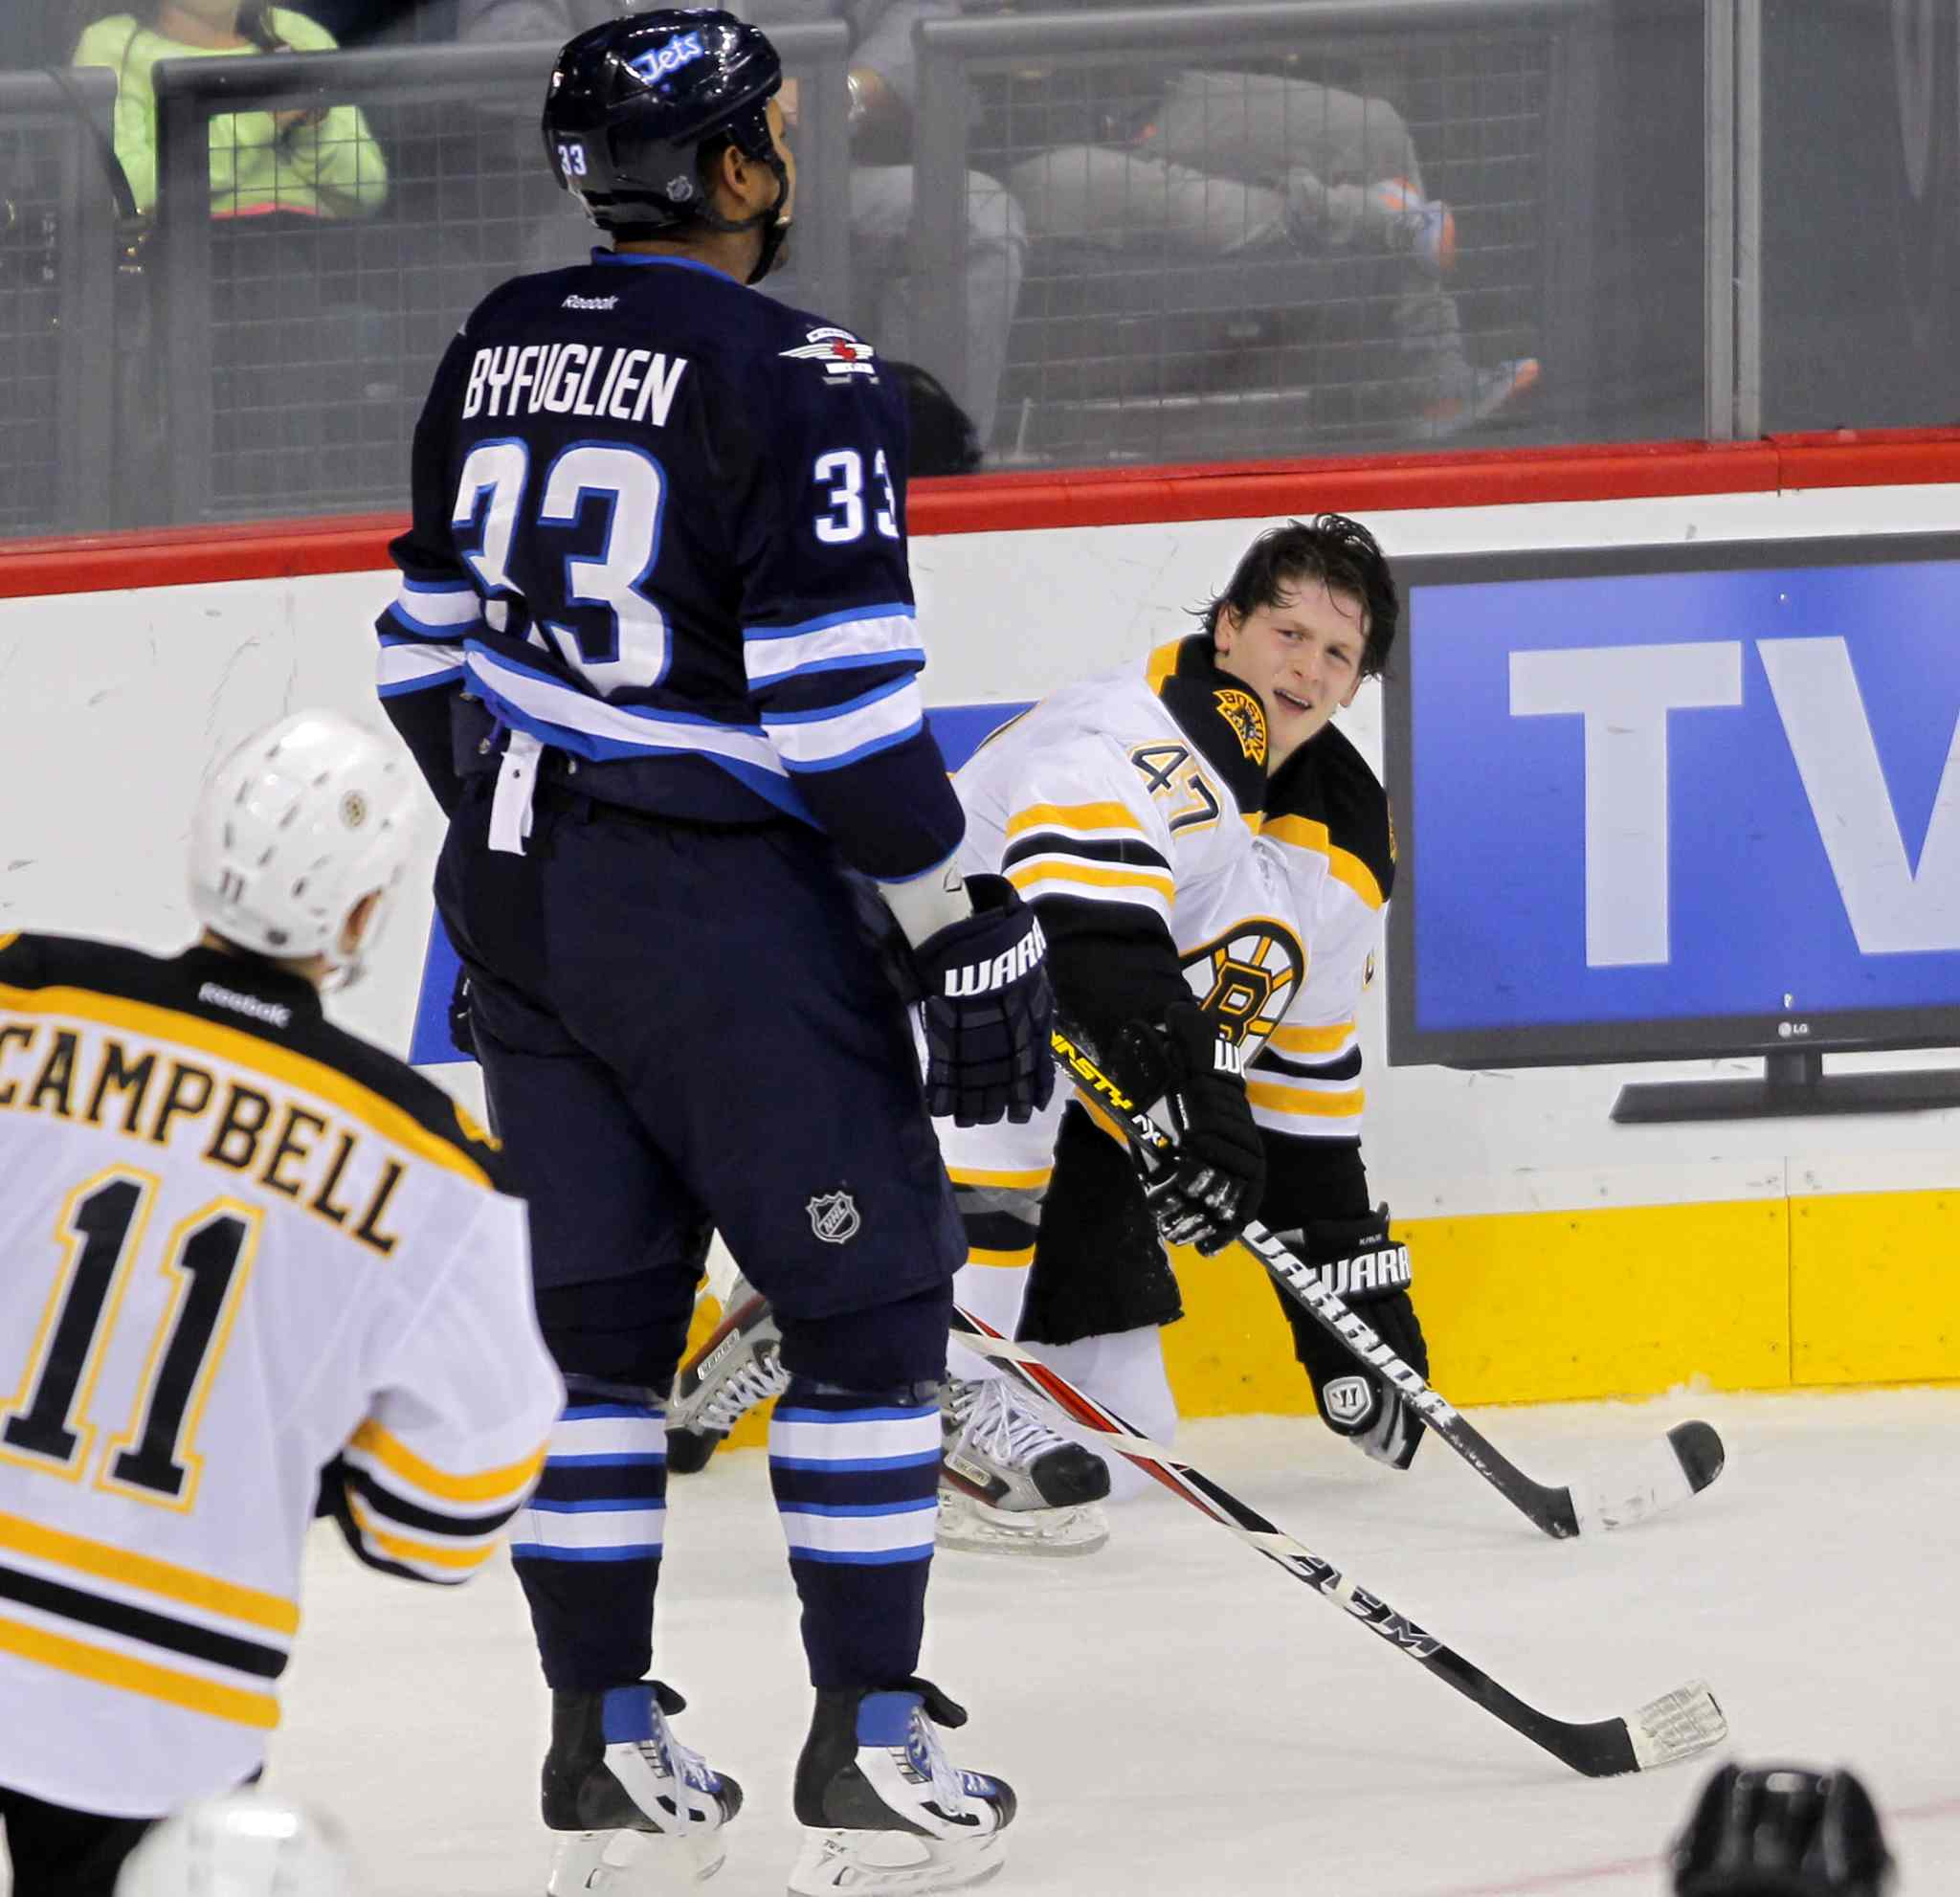 Dustin Byfuglien reacts after receiving a penalty for crushing Torey Krug.